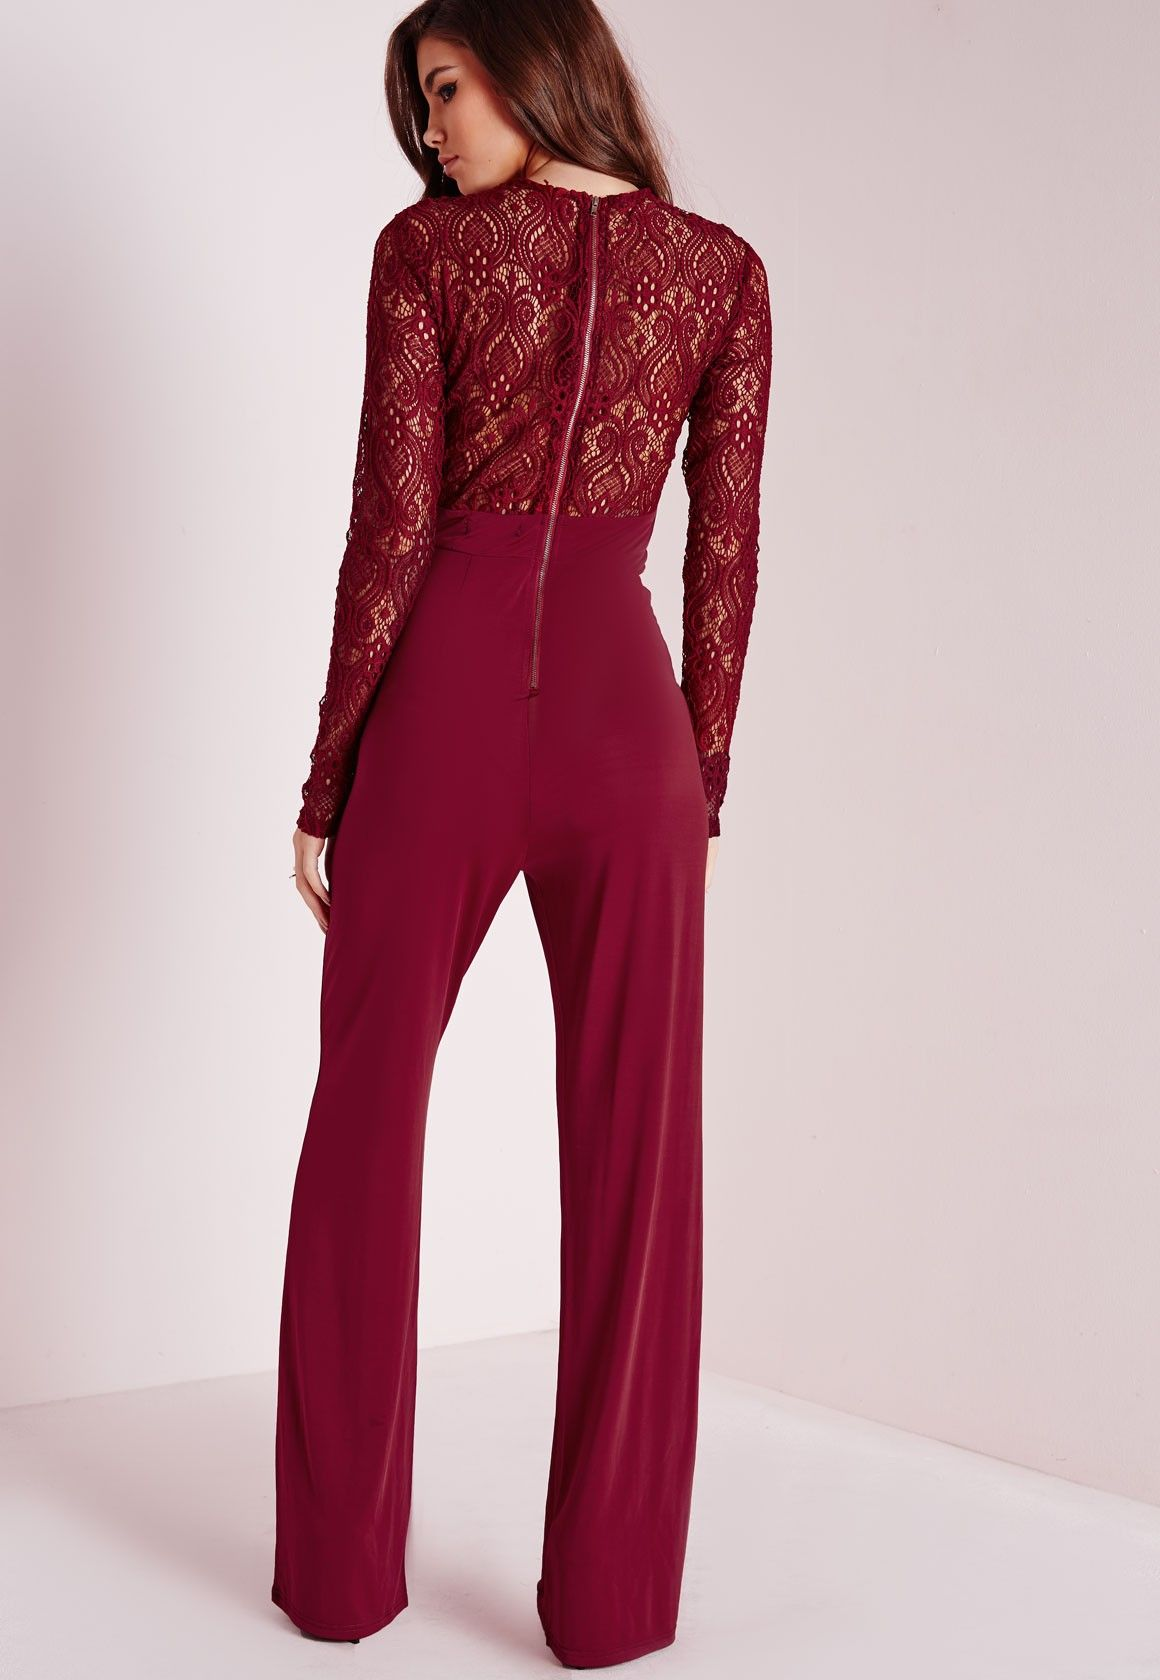 d64505a93a1 Missguided - Lace Slinky Jumpsuit Burgundy